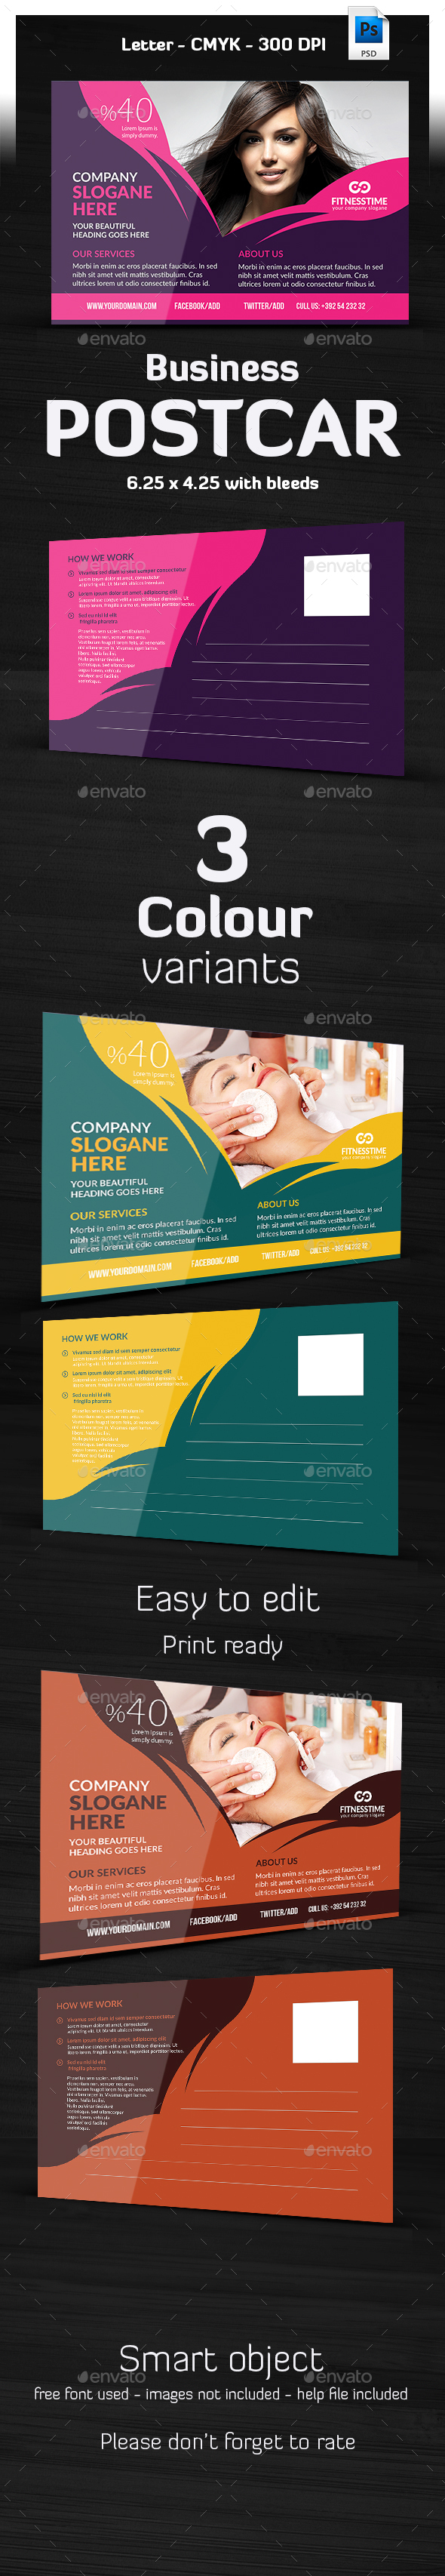 Hair & Beauty Salon Postcard Template  - Cards & Invites Print Templates